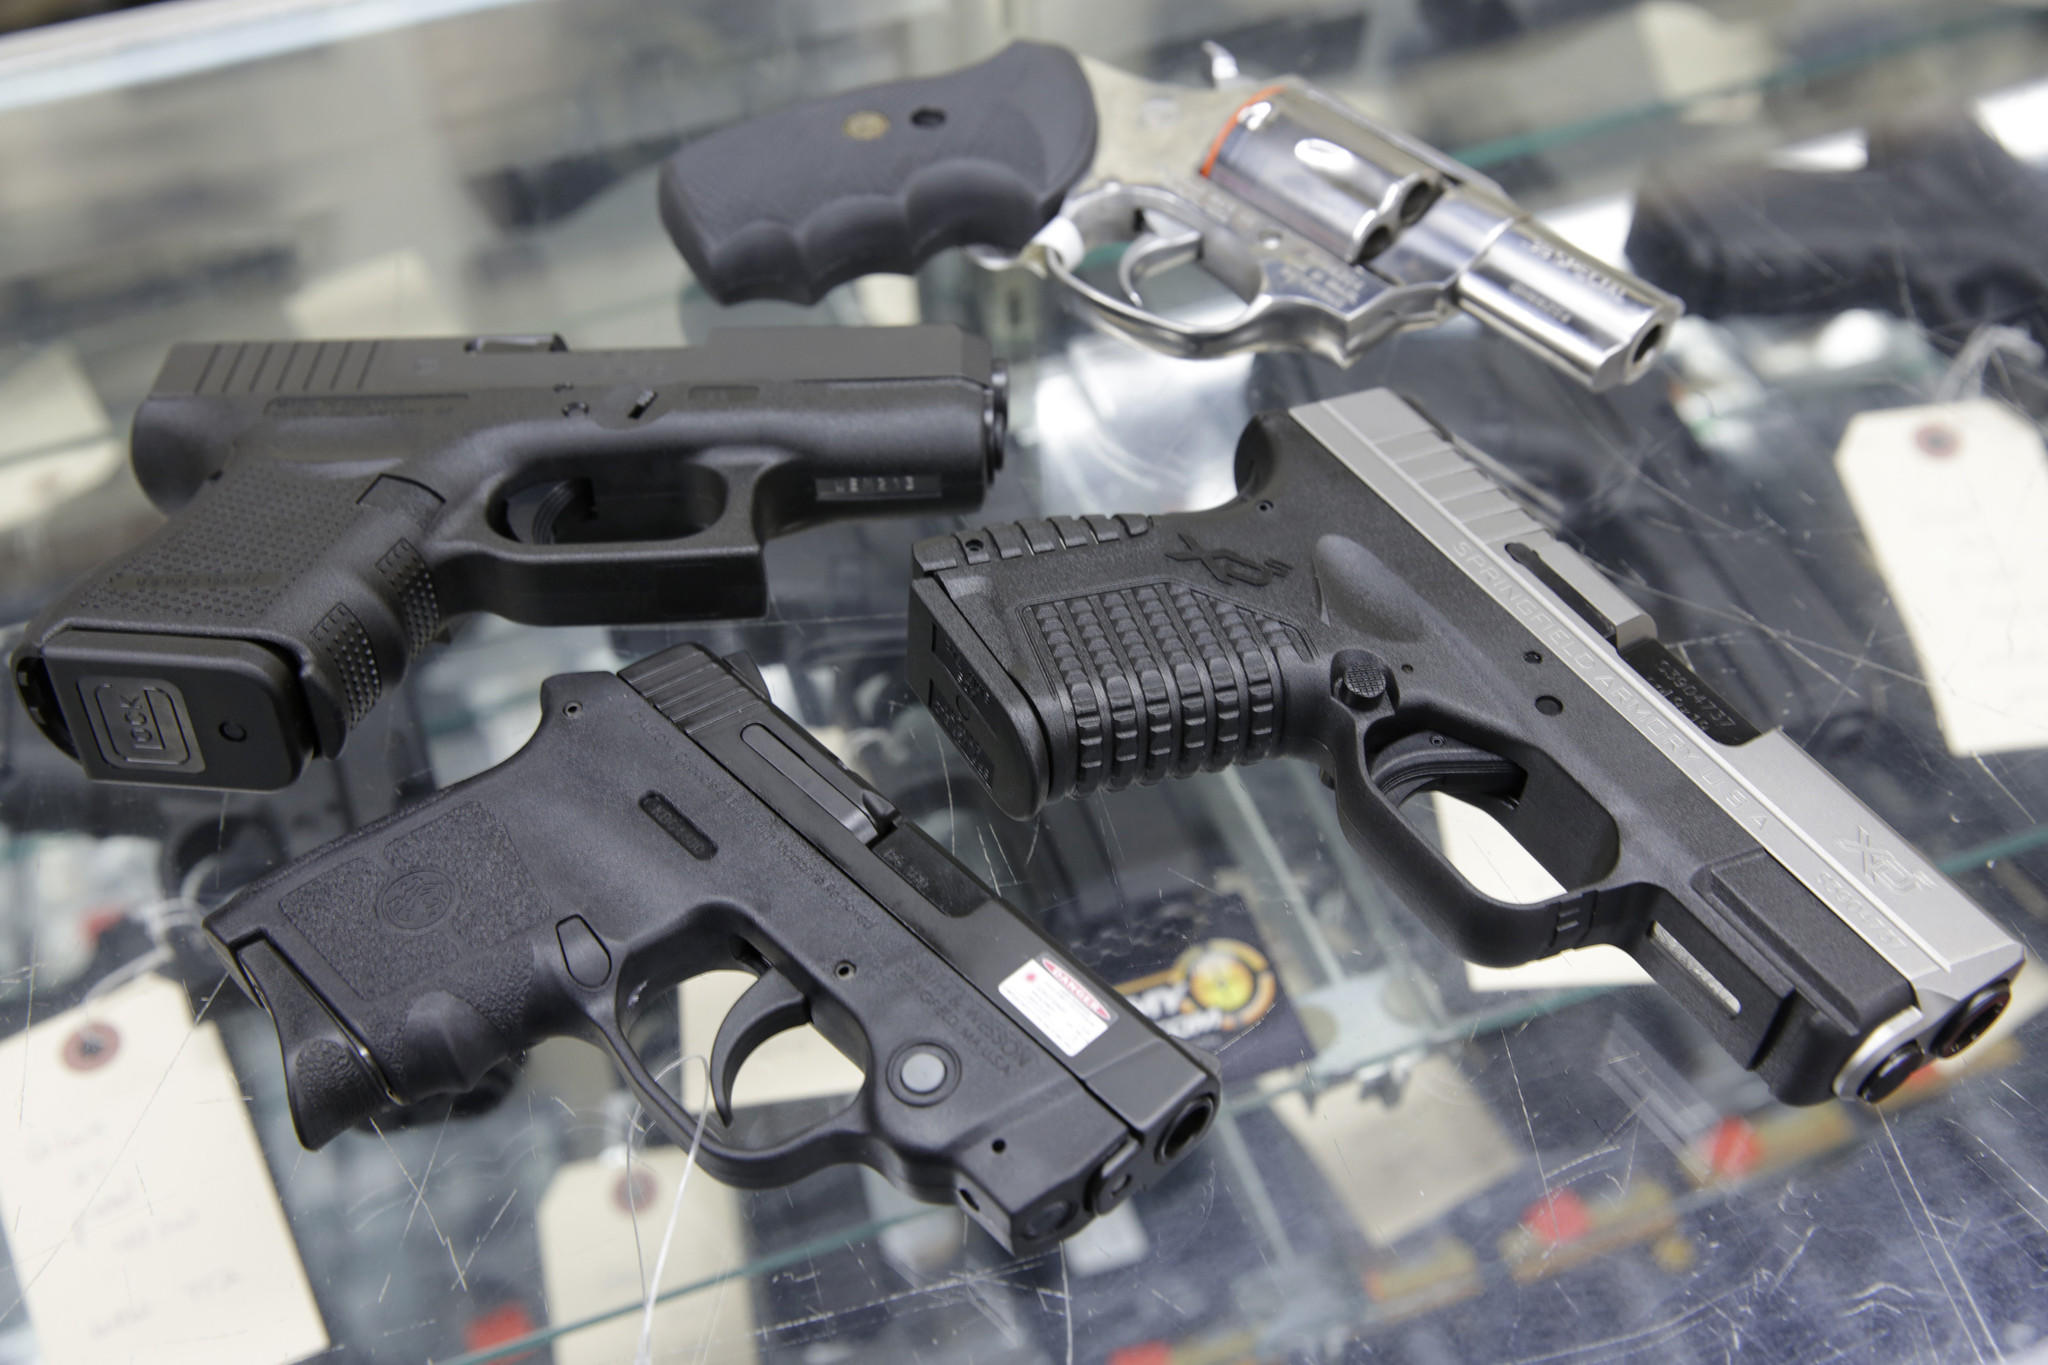 Popular handguns for concealed carry, including the Rossi 352 38 Special  P revolver, Springfield XD-S 9mm, Smith & Wesson Bodyguard 380, andGlock 26 Gen4 9mm, clockwise from top, on display at Article II Gun Shop and Range, 250 Cortland Ave., in Lombard.